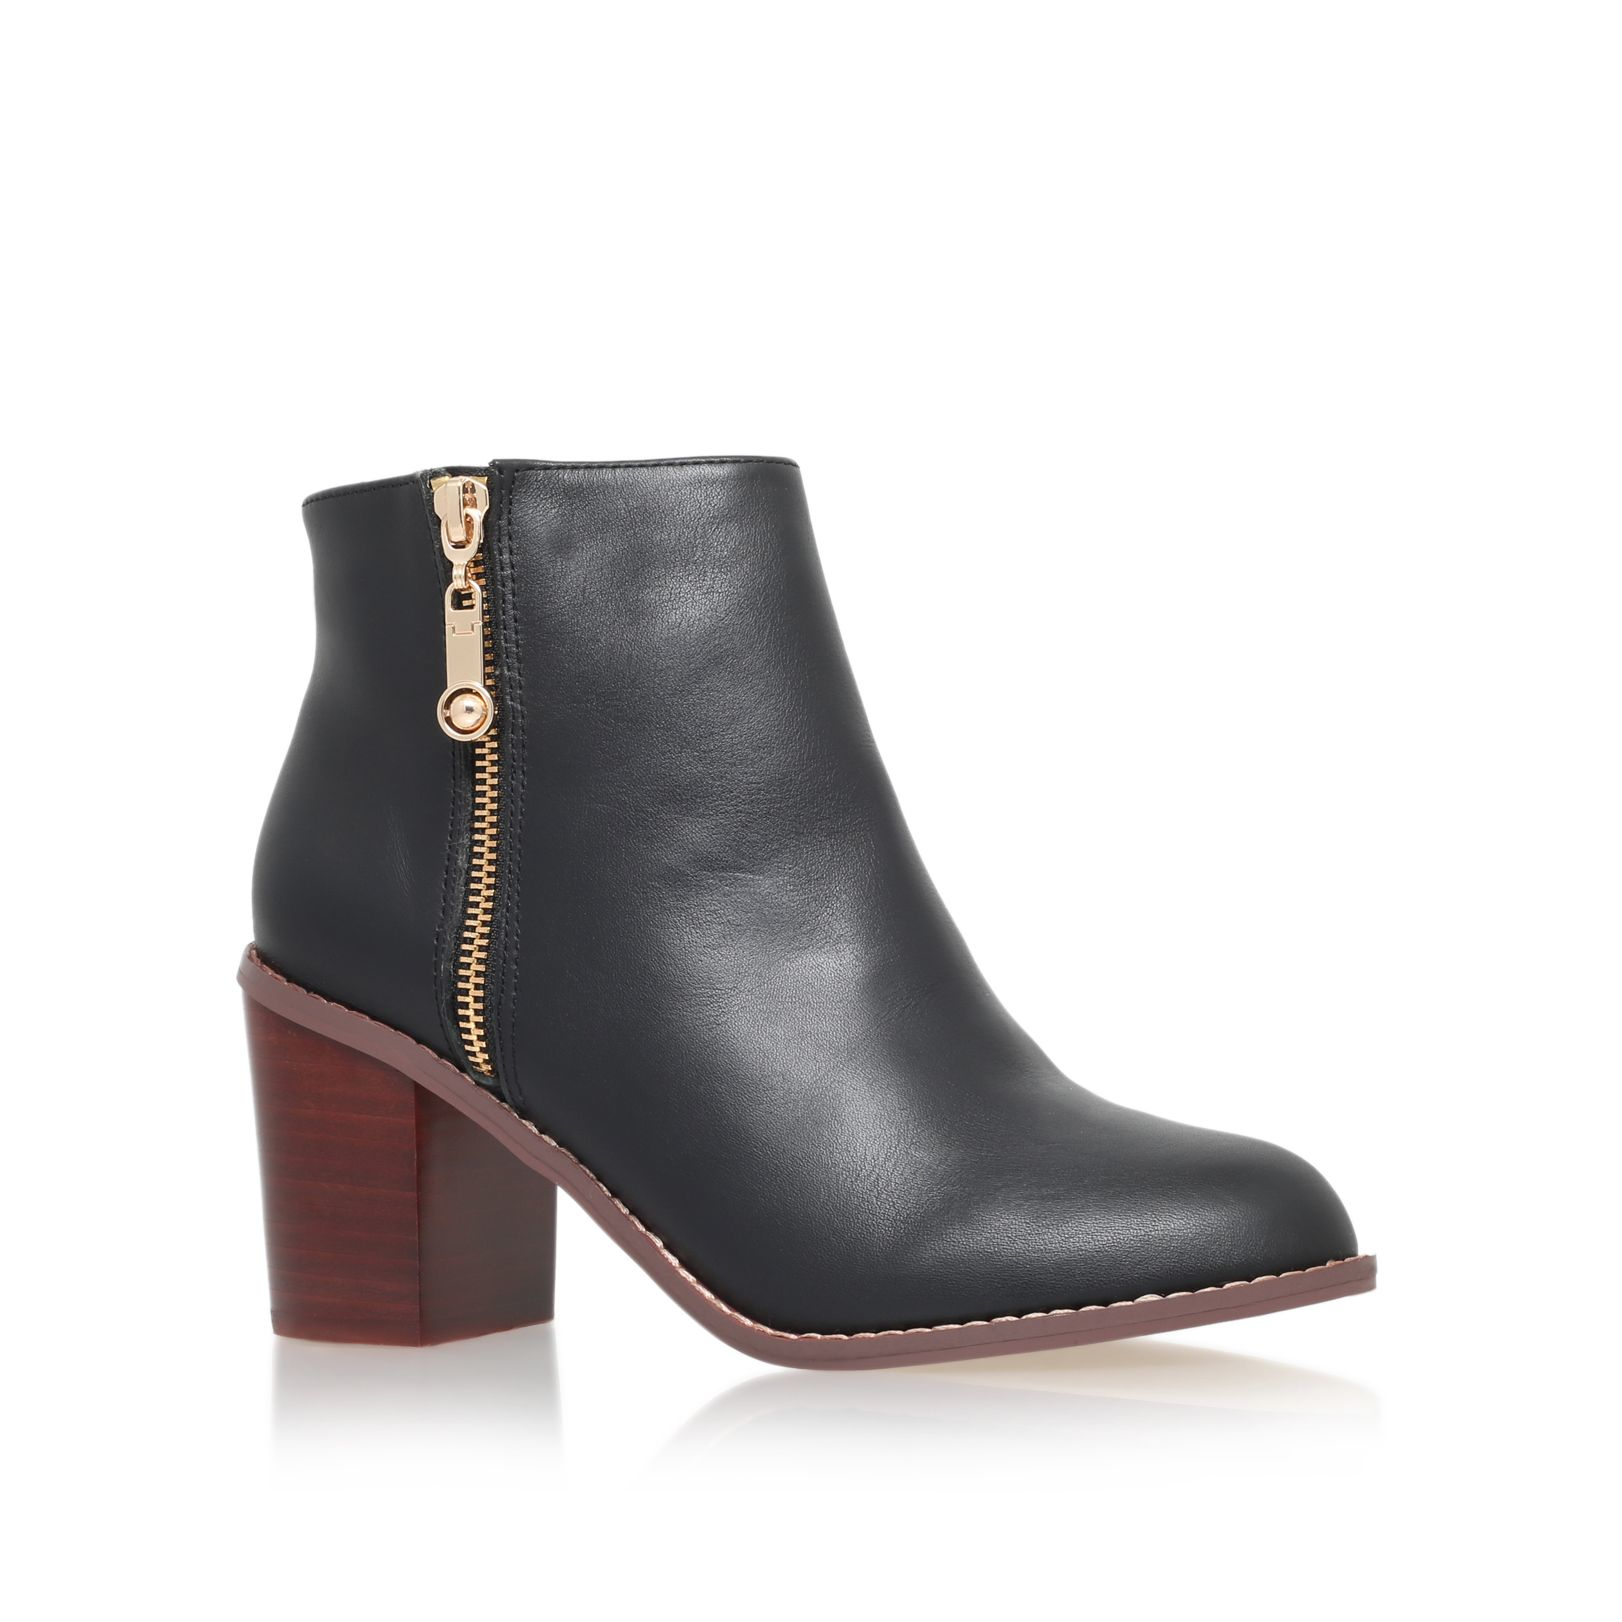 Carvela Kurt Geiger Tag Mid Block Heel Ankle Boots In Black | Lyst